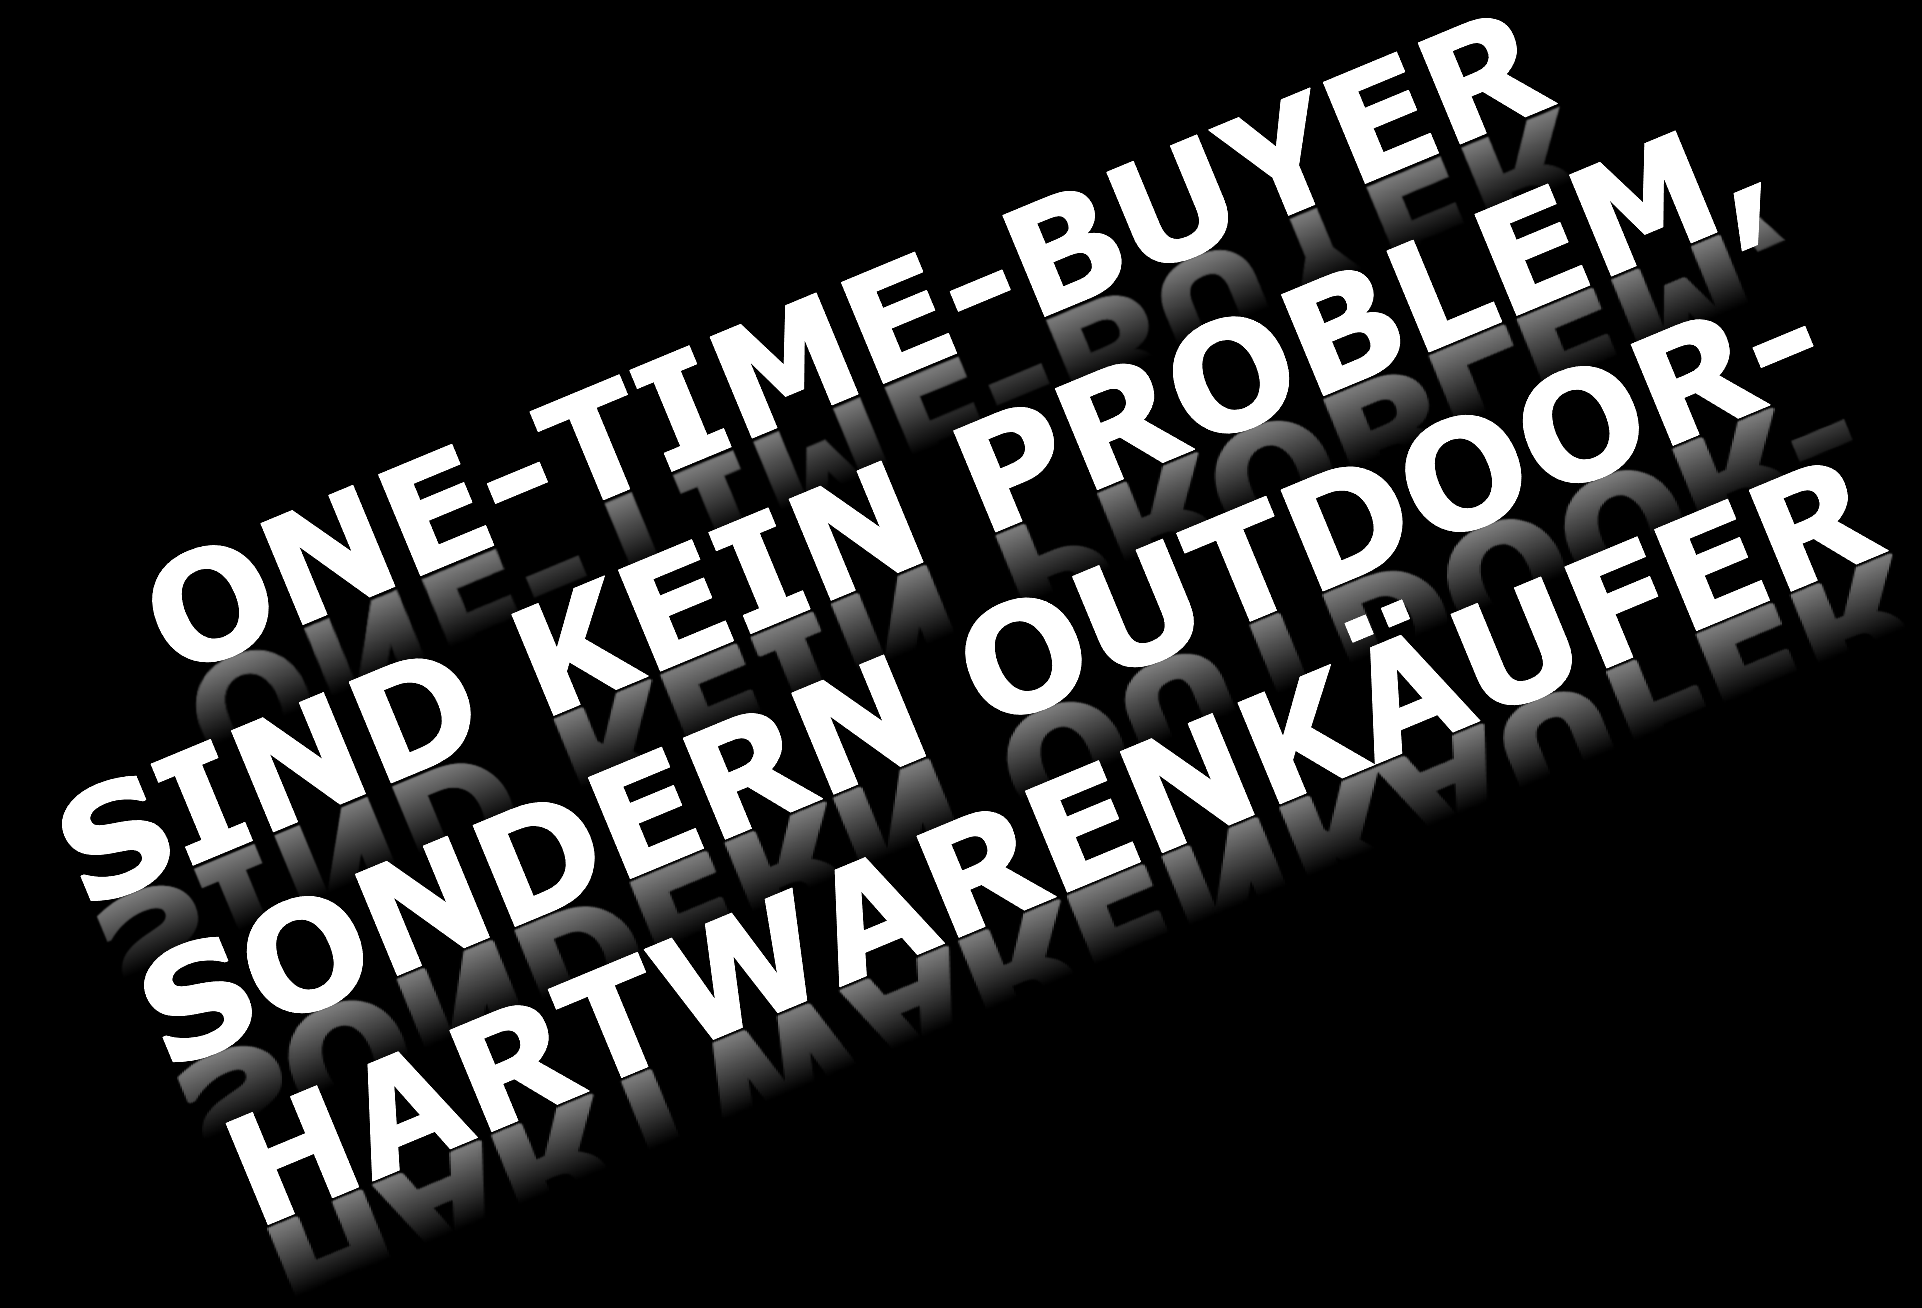 One-Time-Buyer Profil erstellen nach Cluster Anzahl Neukunden Score: More-Time-Buyer Score: One-Time-Buyer TOTAL Outdoor-Einsteiger 5.637 3.592 9.229 Kinder + Outdoor 550 63 613 Herrenschuhe 5.